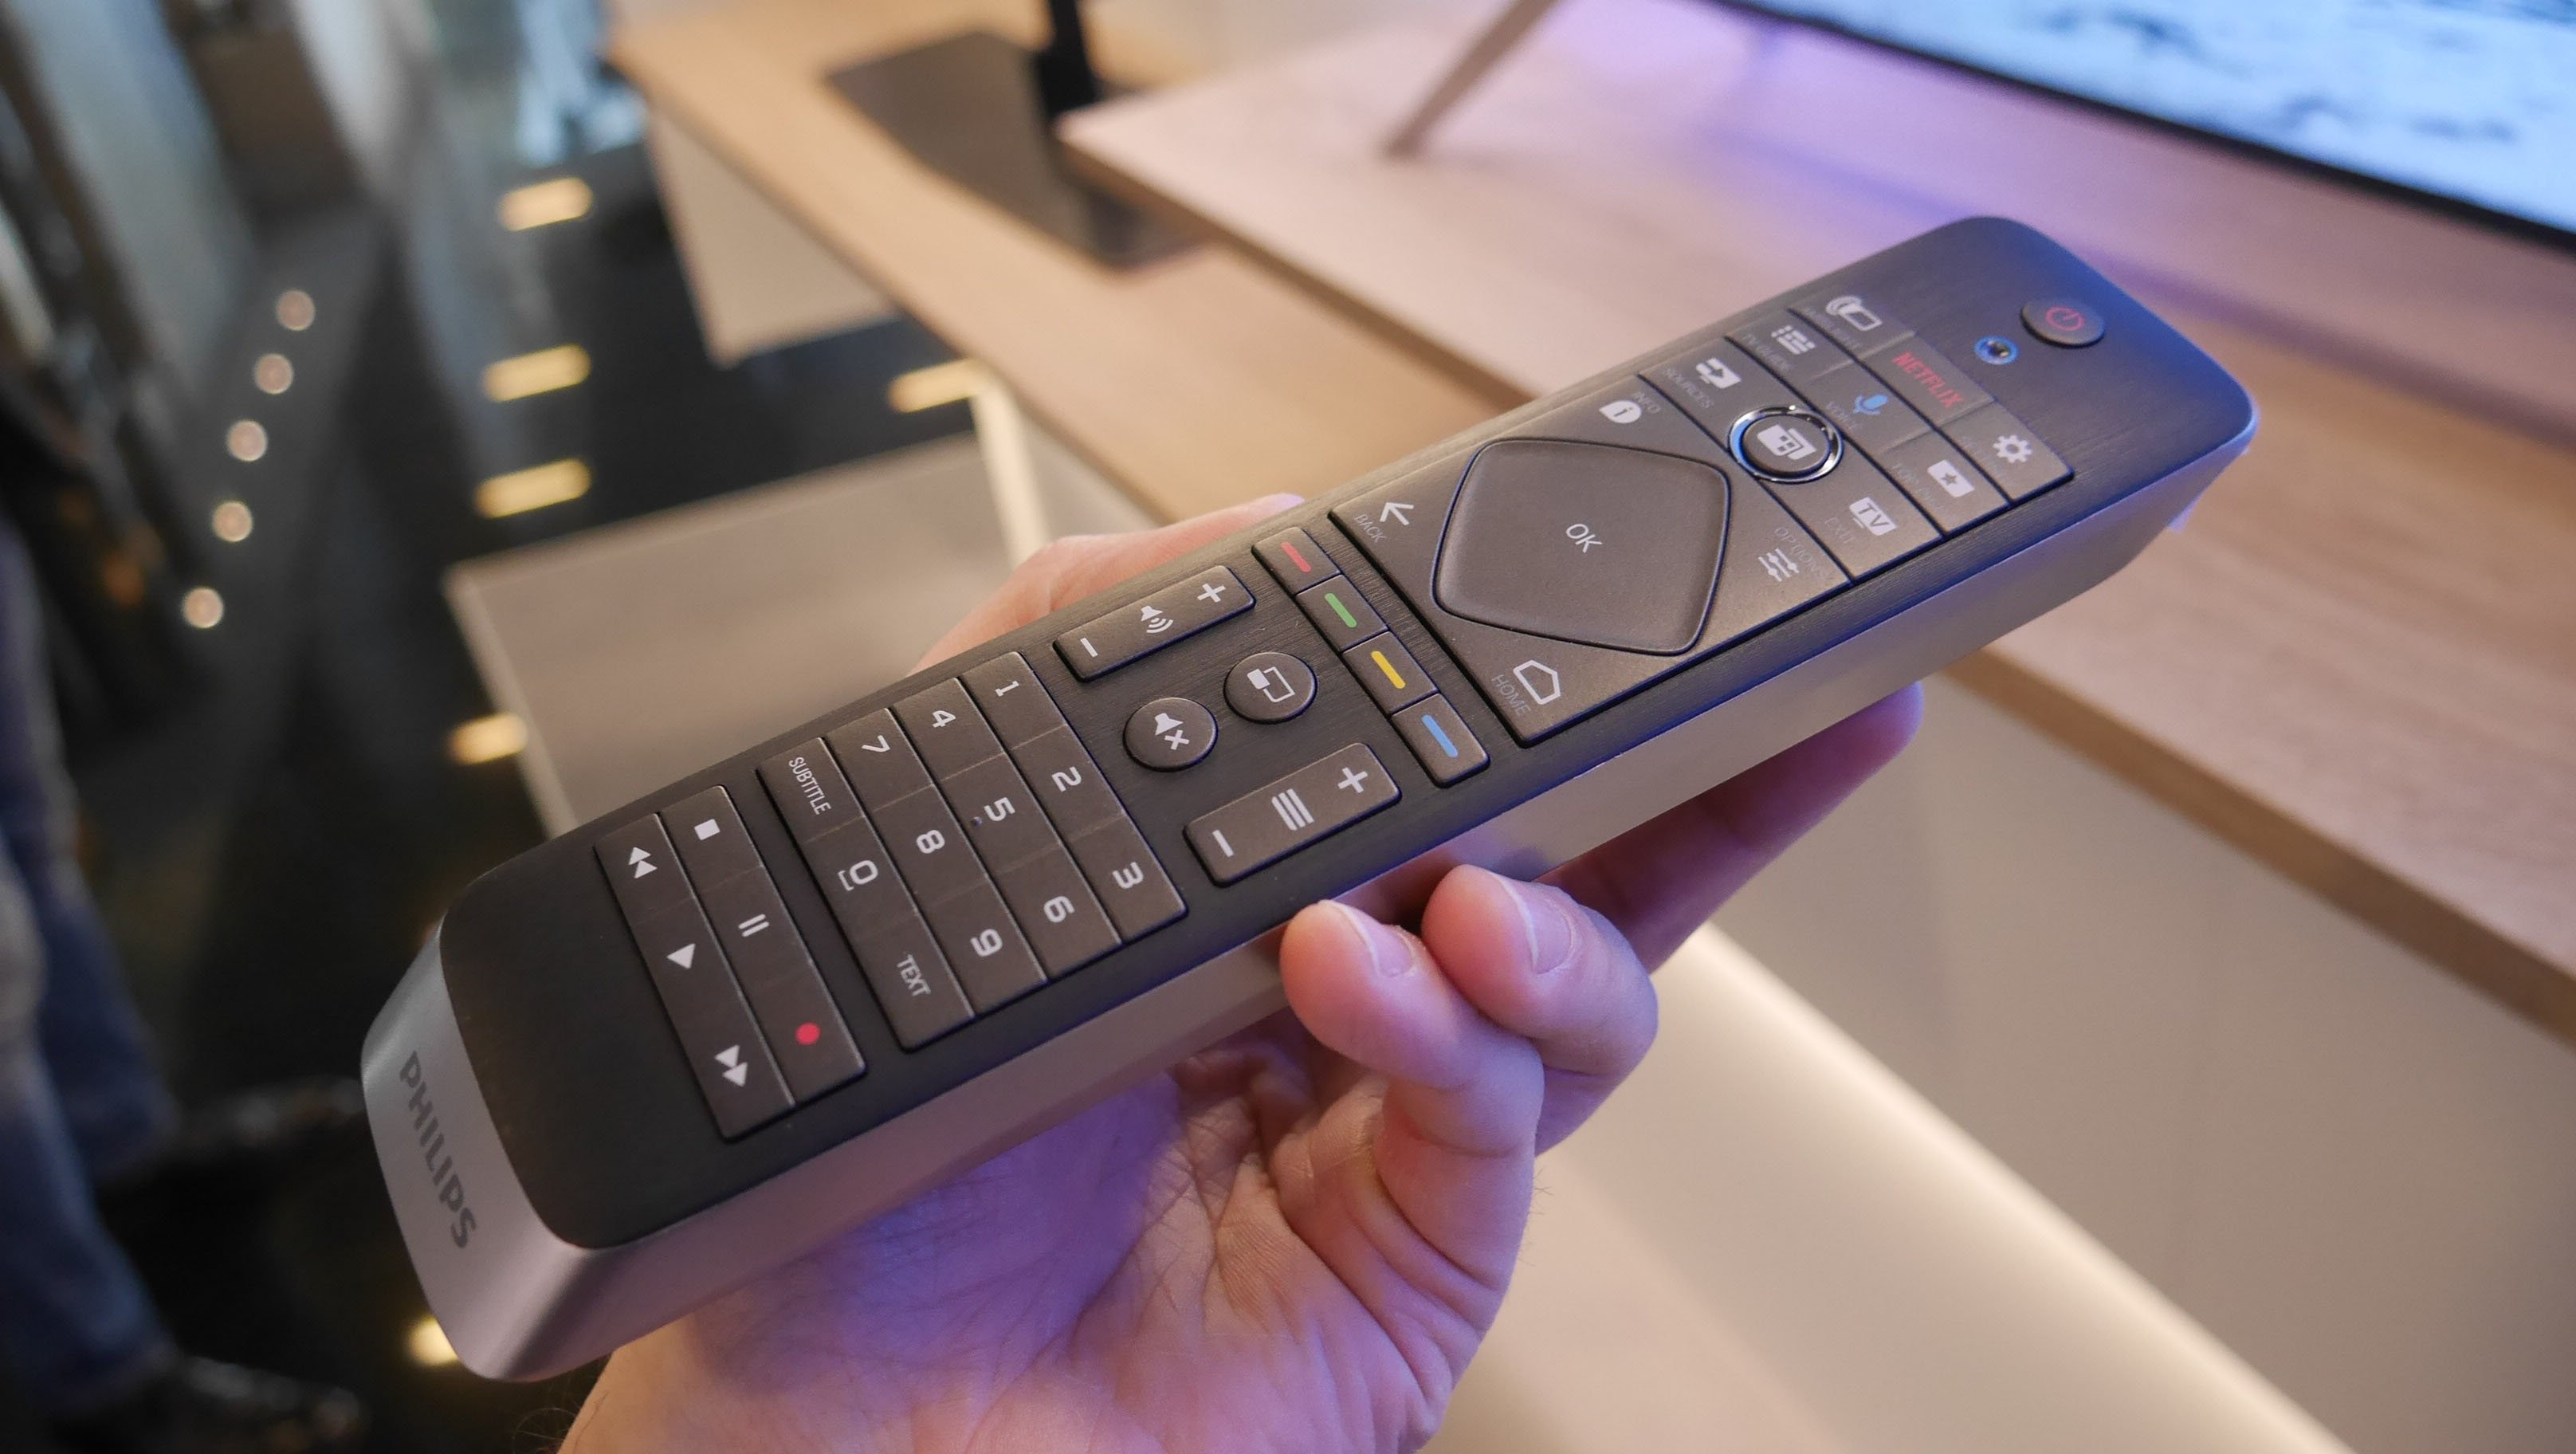 samsung smart tv remote 2015. first half of 2015 shaping up to be a big step for android tv, with philips and tp vision committing the smart tv os samsung tv remote r